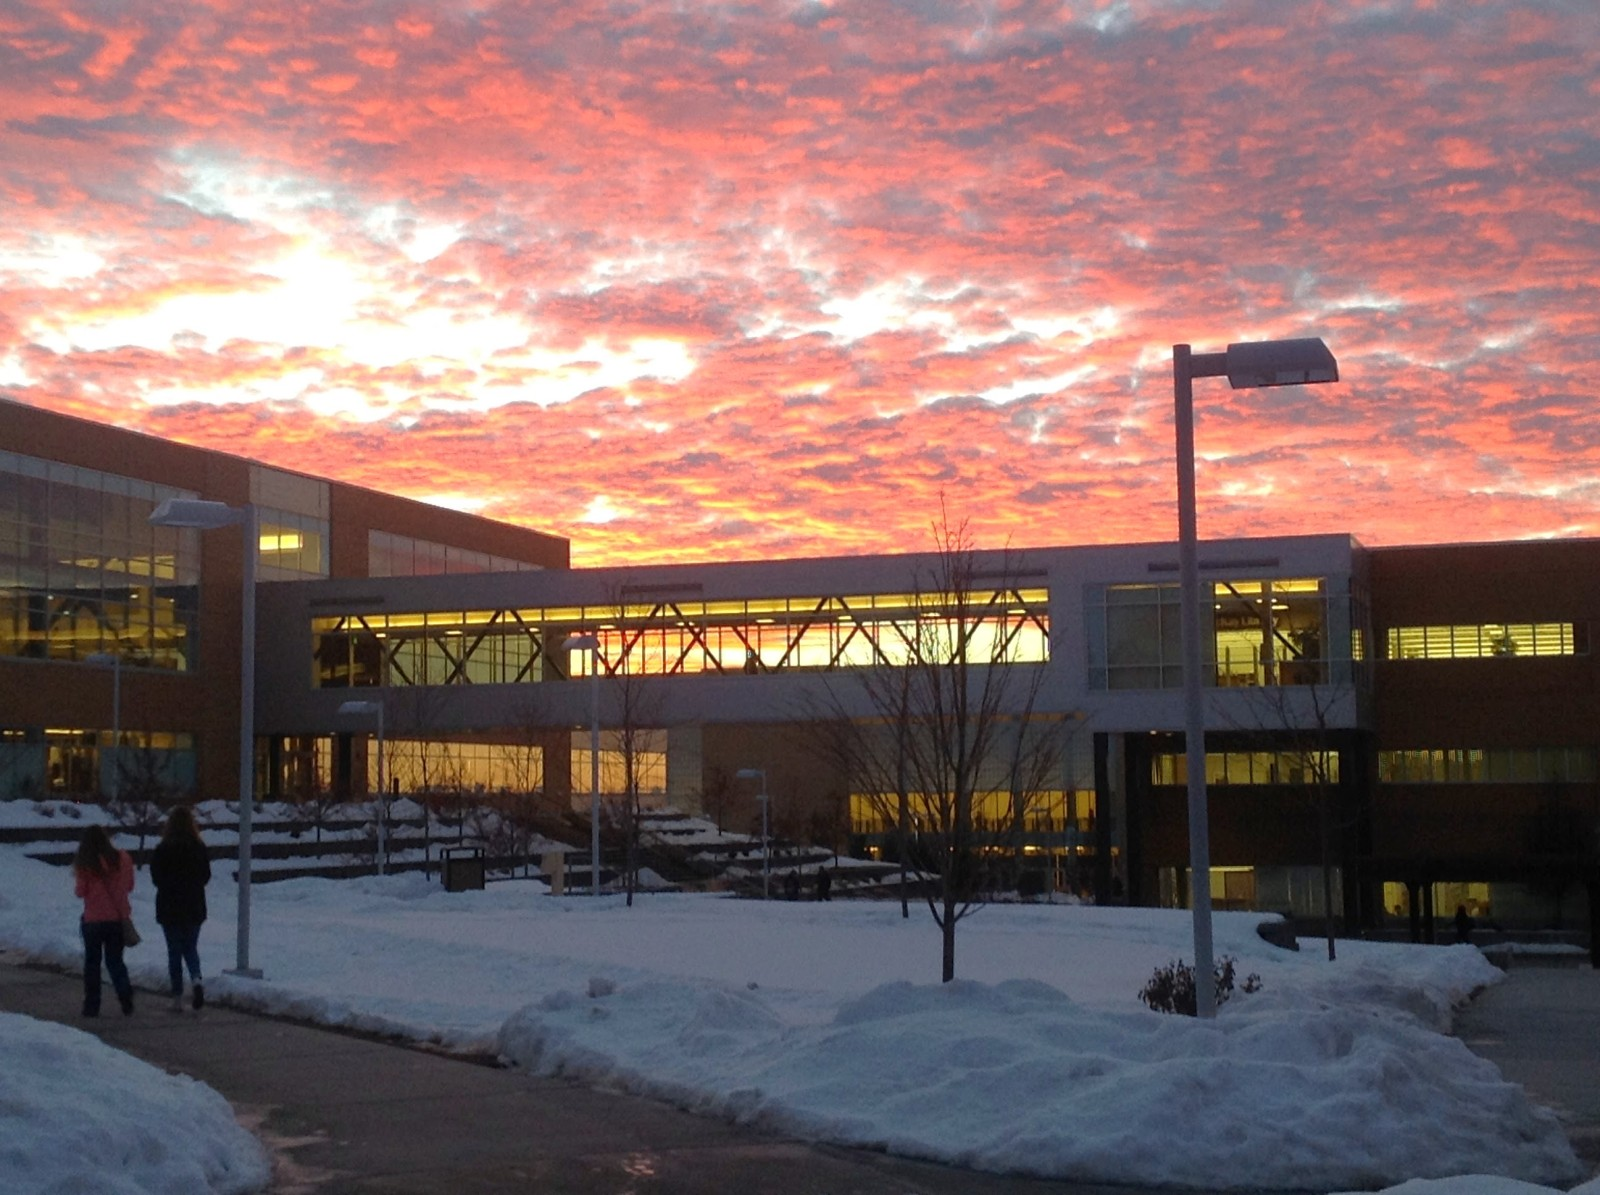 A sunset over BYUI in Rexburg